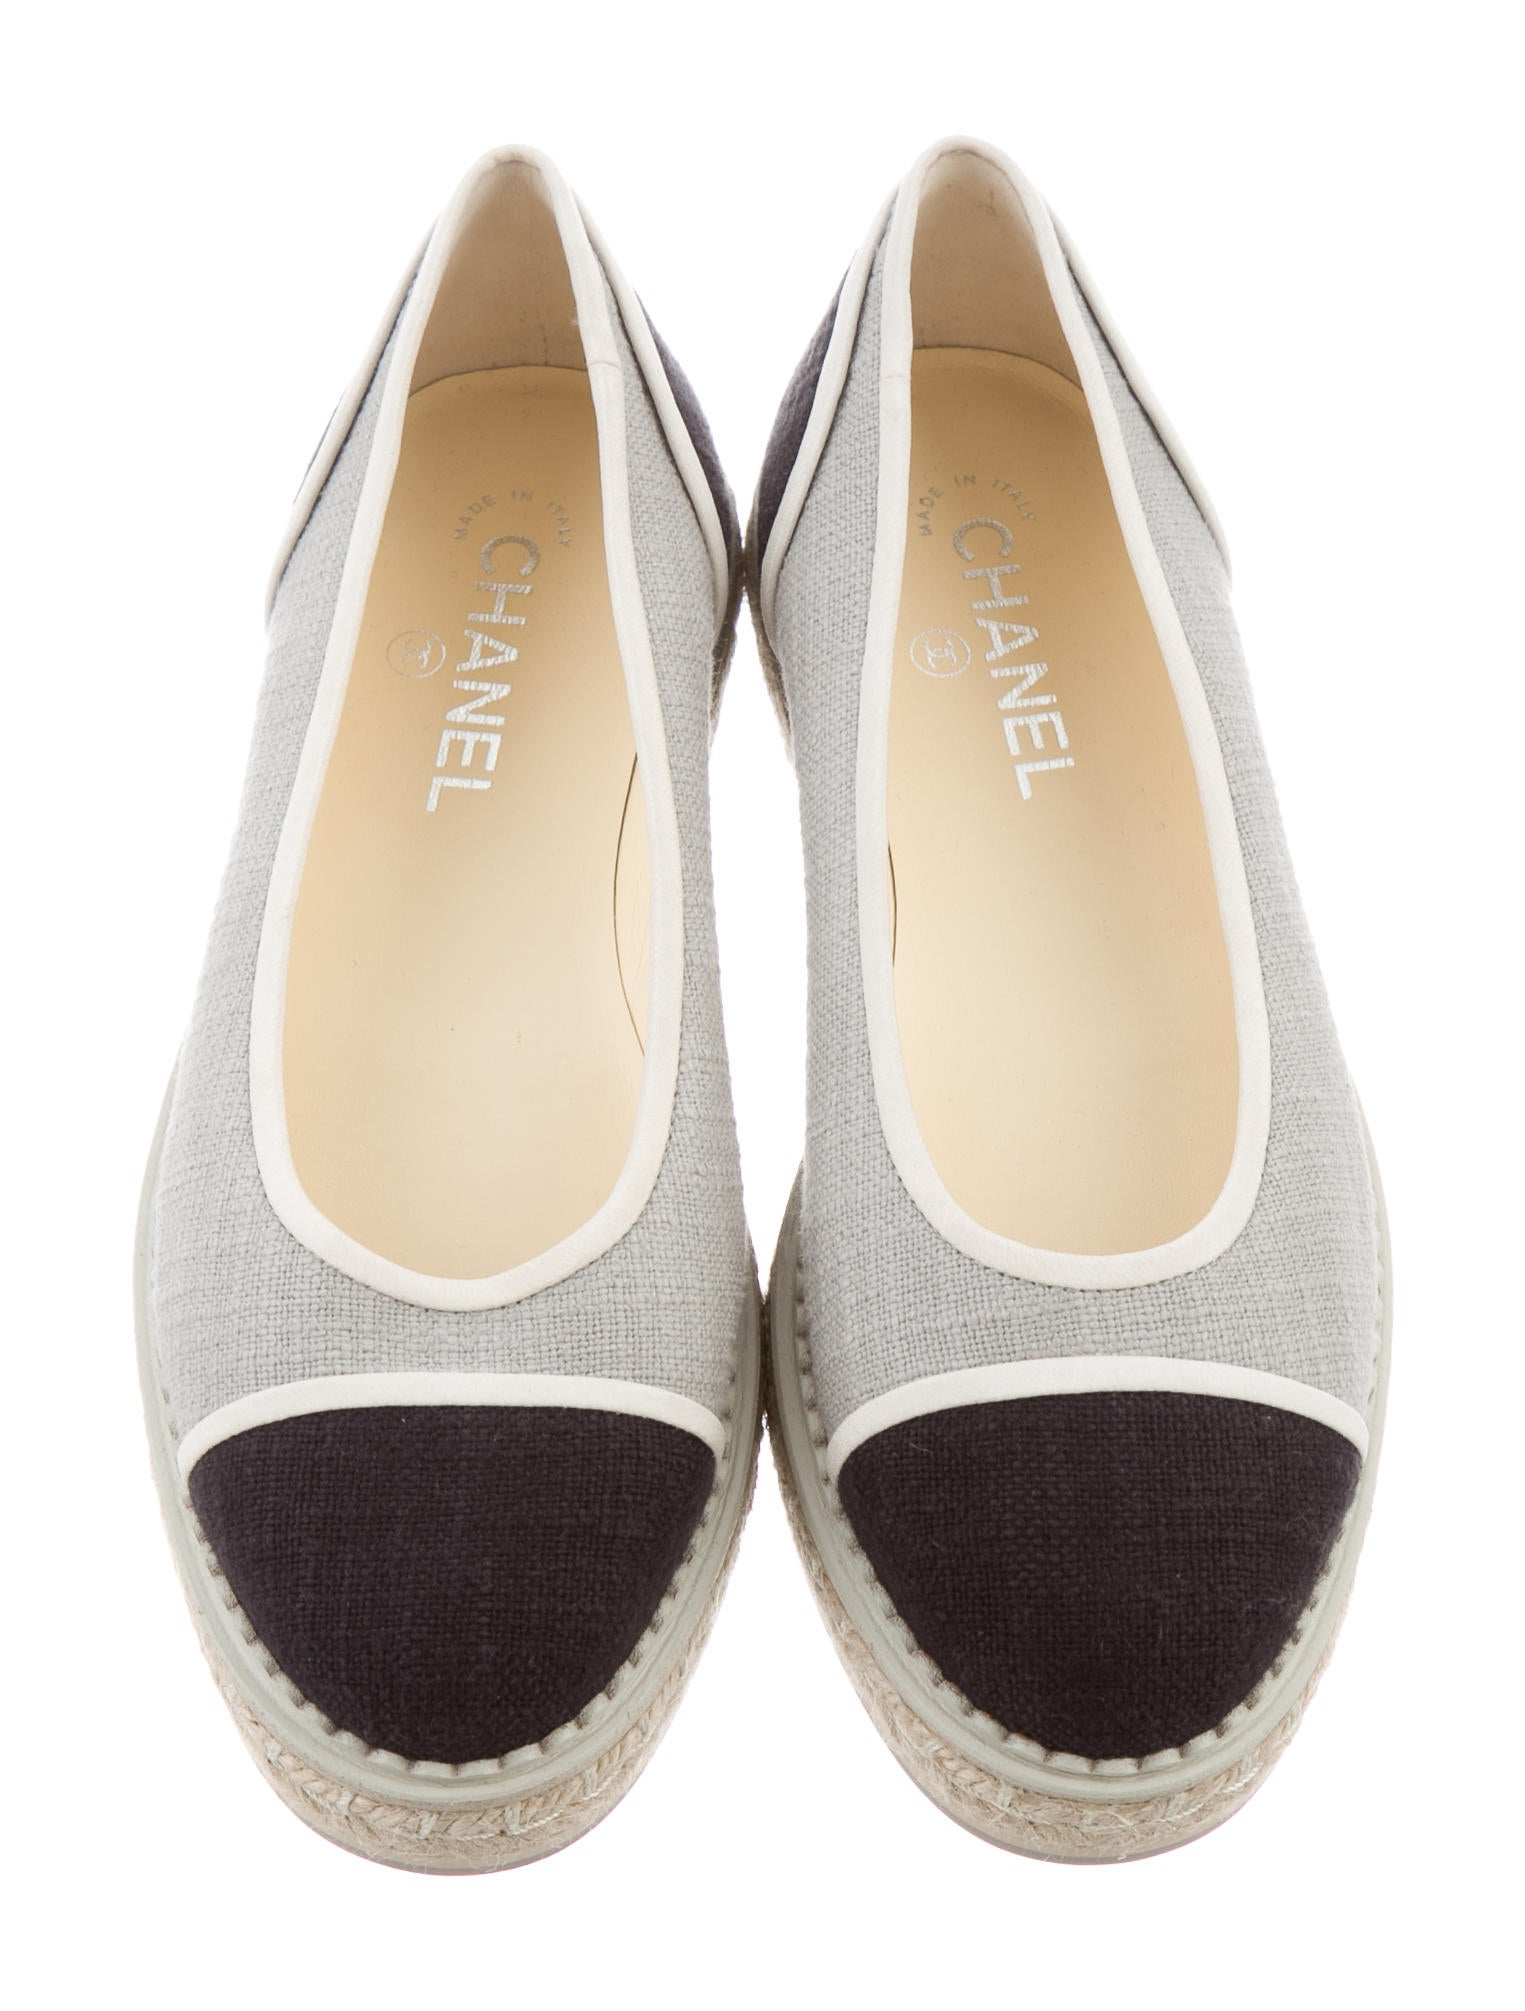 chanel canvas espadrille flats shoes cha174559 the